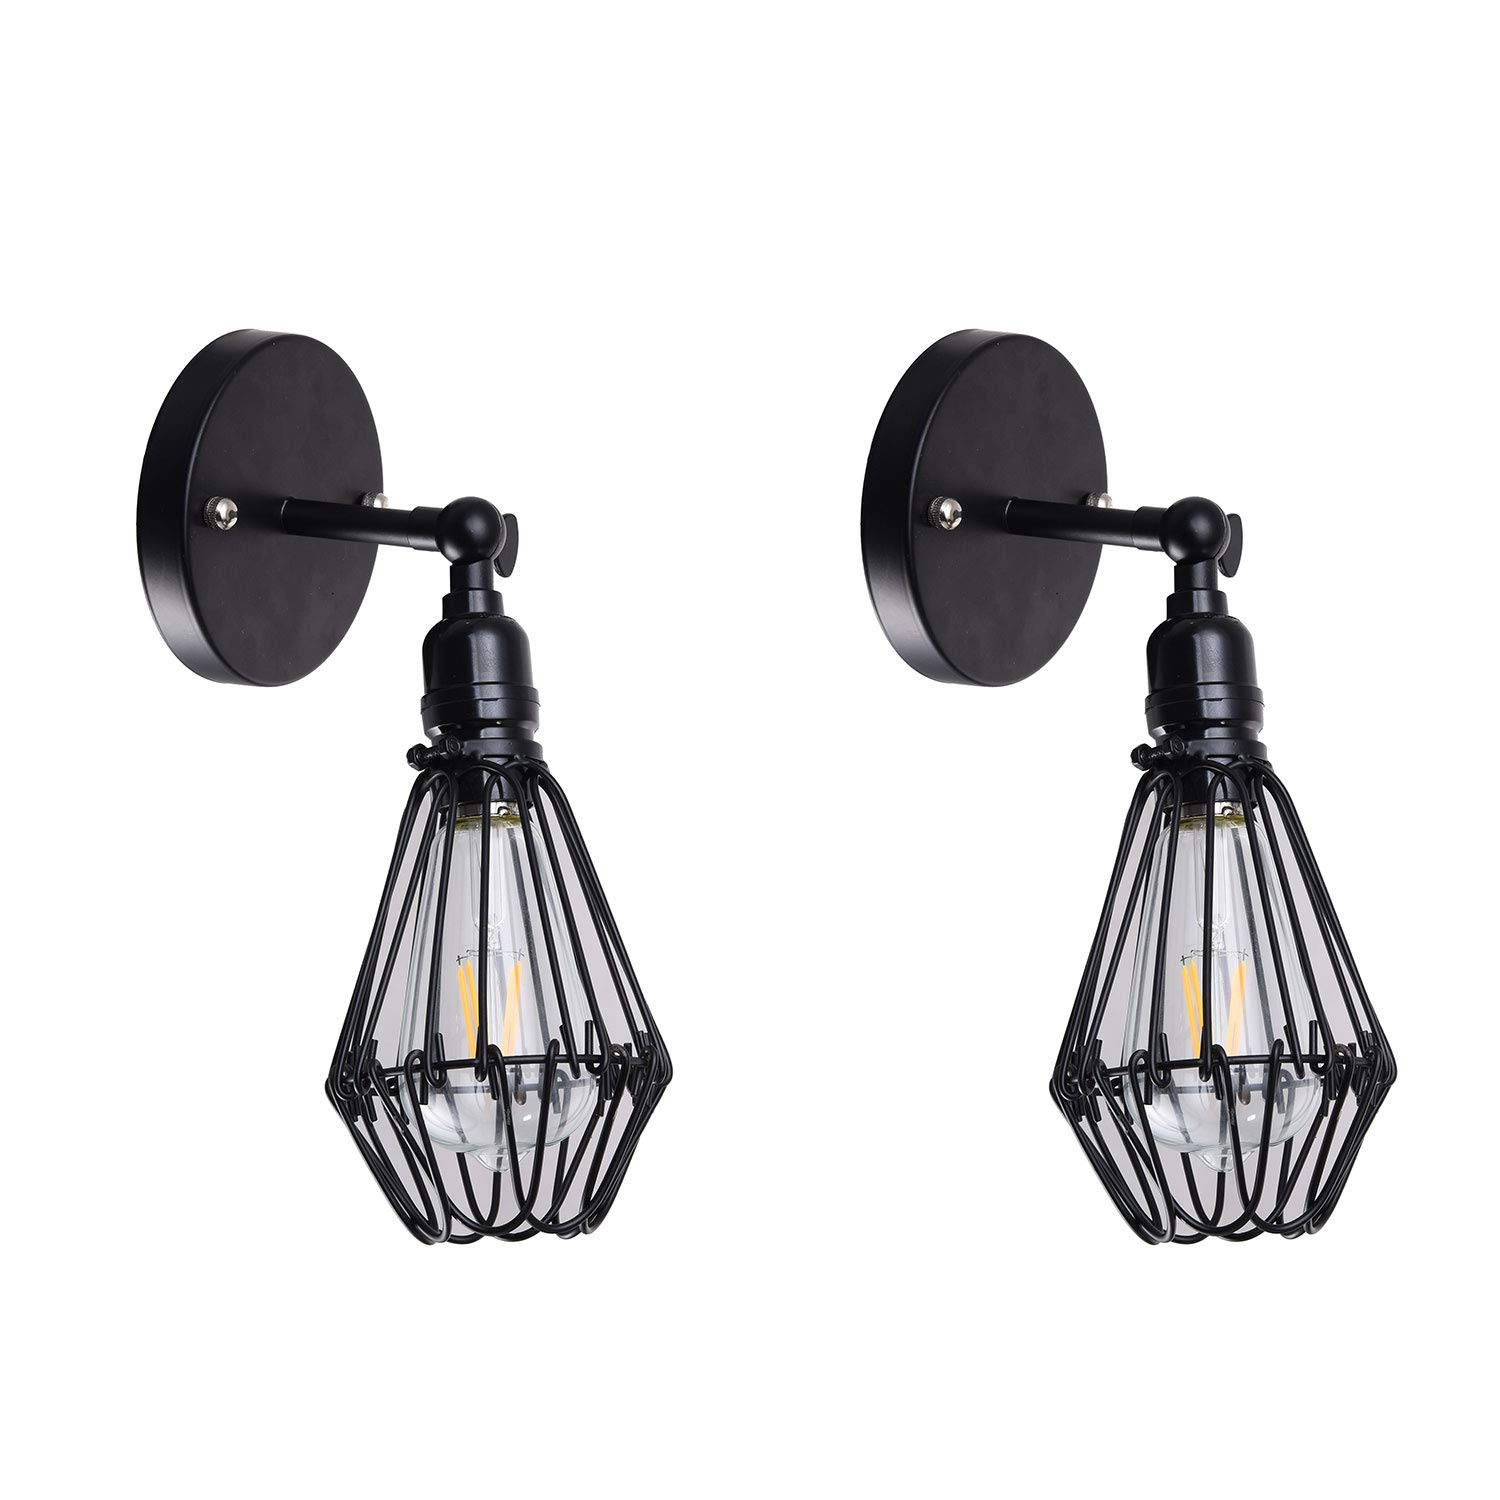 CEENWE Wire Cage Industrial Wall Sconce Plug-in Wall Light Shade Vintage Style Edison E26 Base with Dmmer Switch for Headboard Bedroom Garage Porch Light 2 Packs